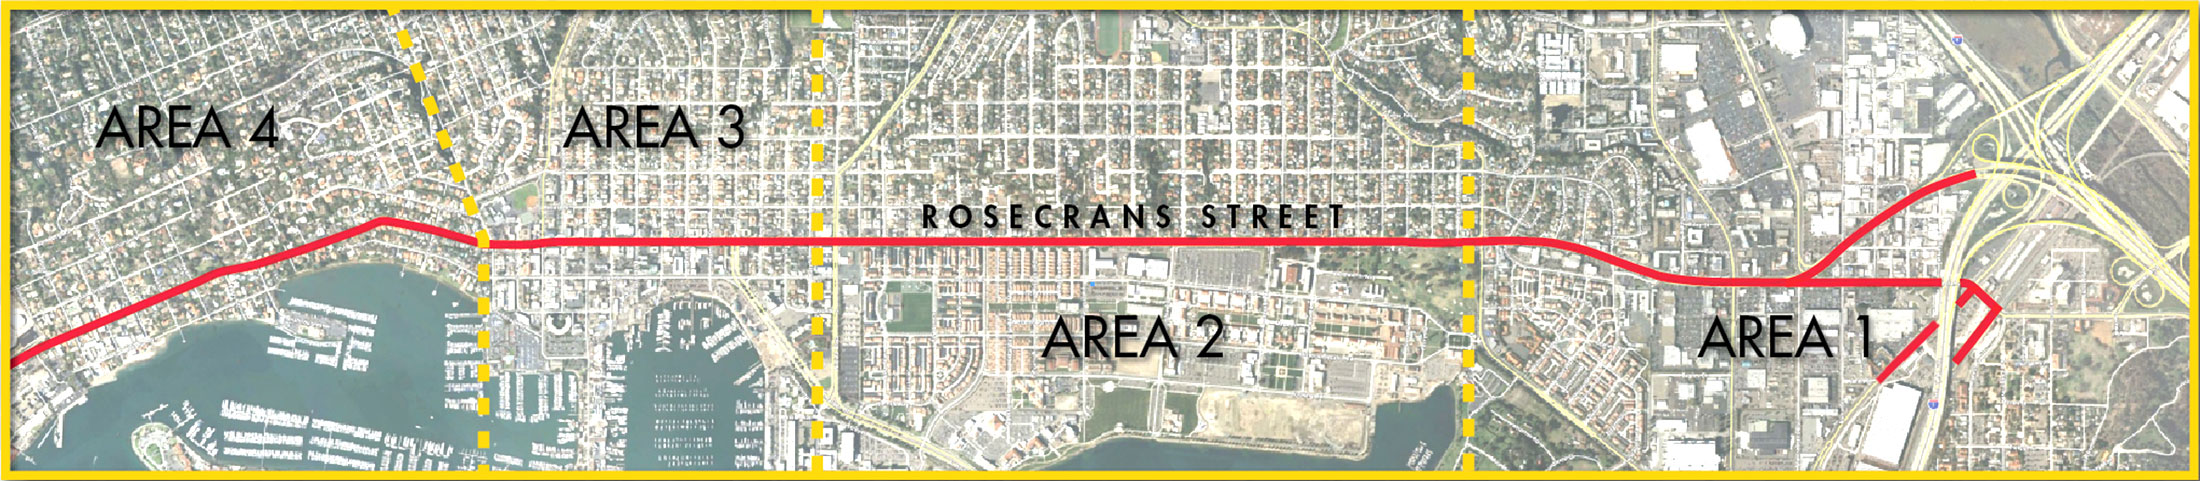 Map of four zones within the Rosecrans Corridor